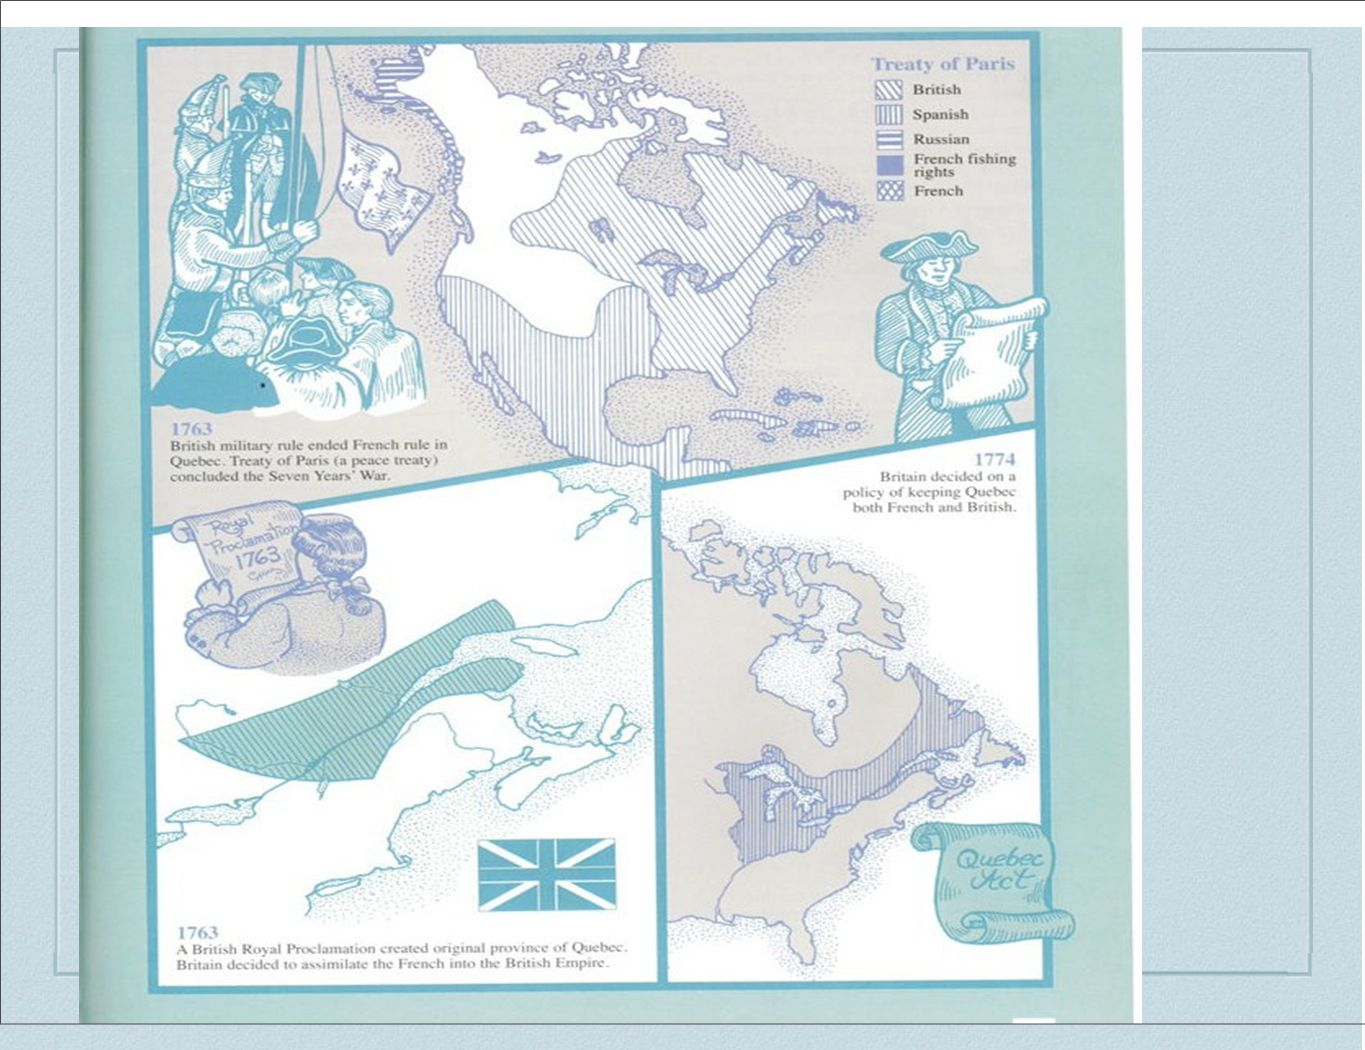 With the capture of Louisbourg, the British could now control the entrance to the St.